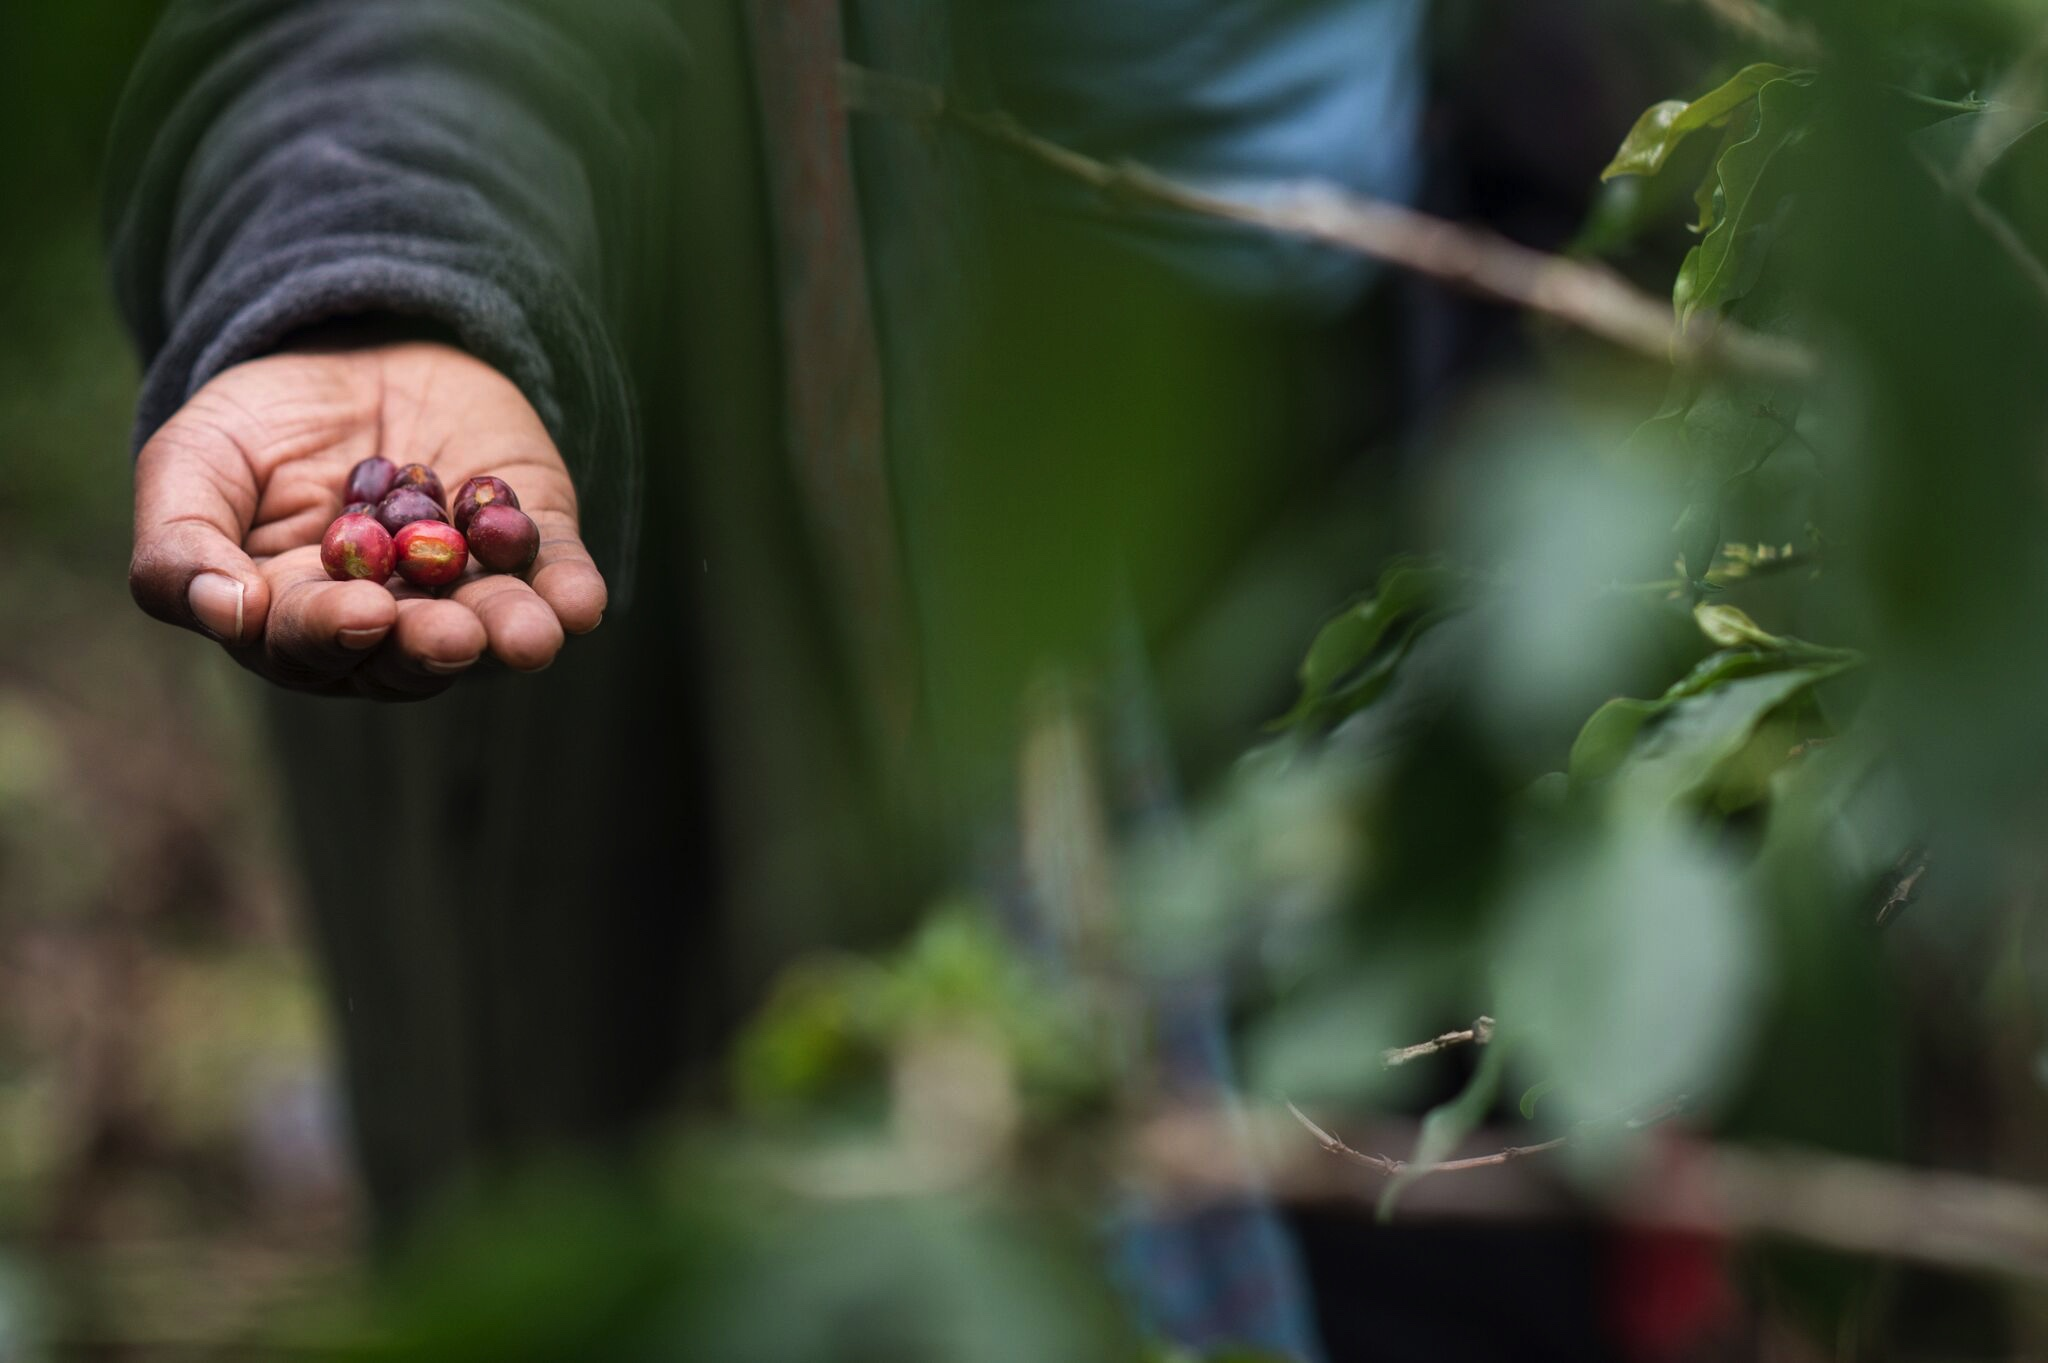 Freshly picked coffee cherries. Photo Jo-Anne MacArthur, Unbound Project